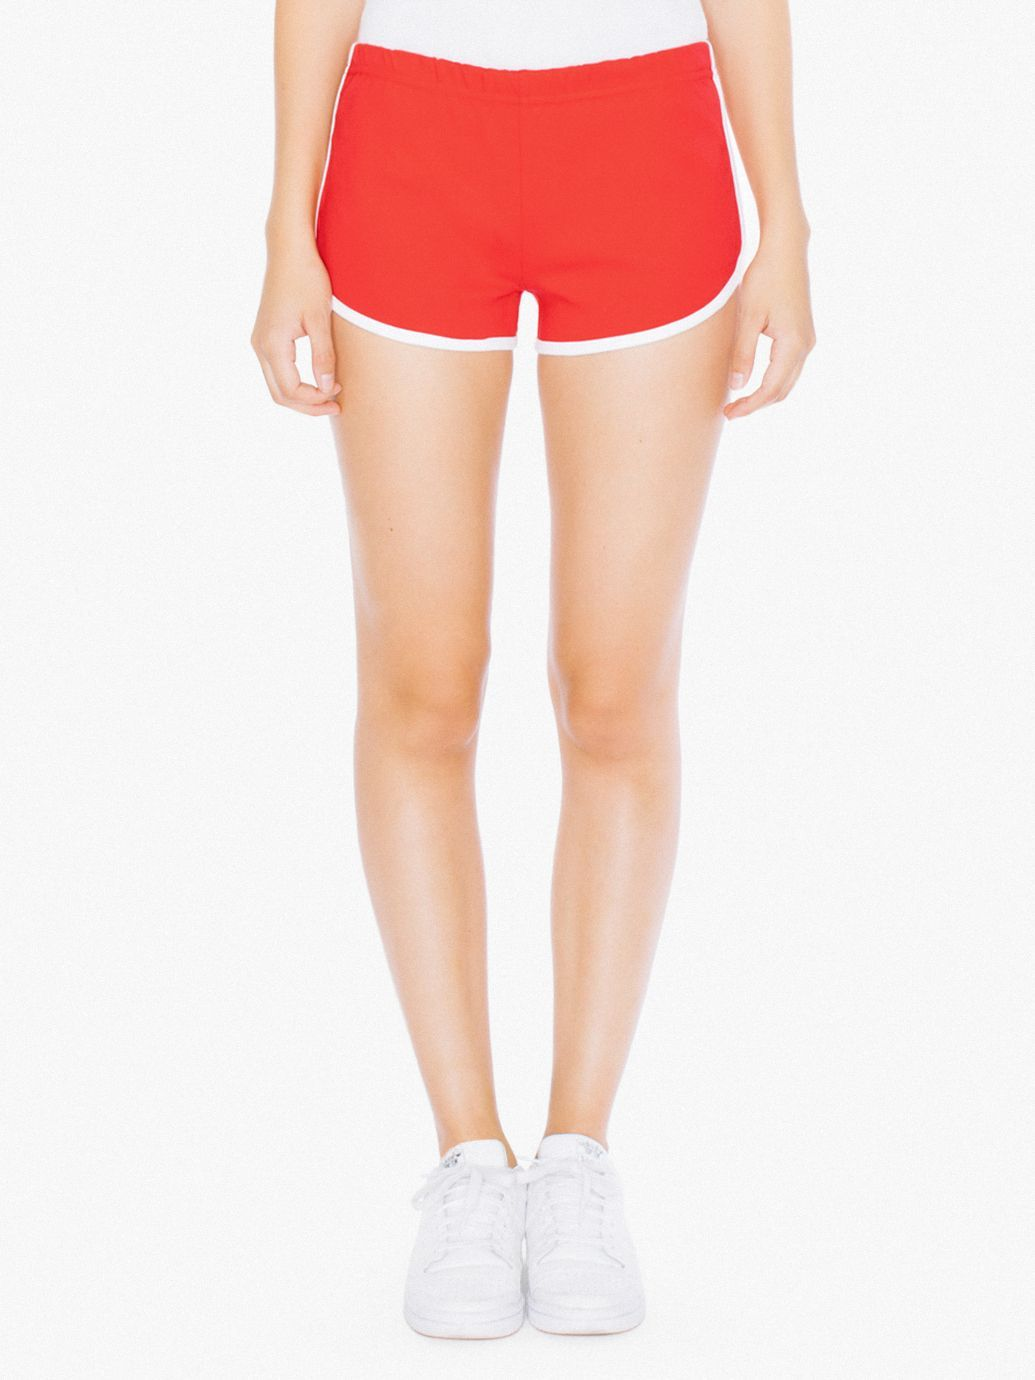 The Interlock Running Short Is A Modern Take On Classic 70s Shorts